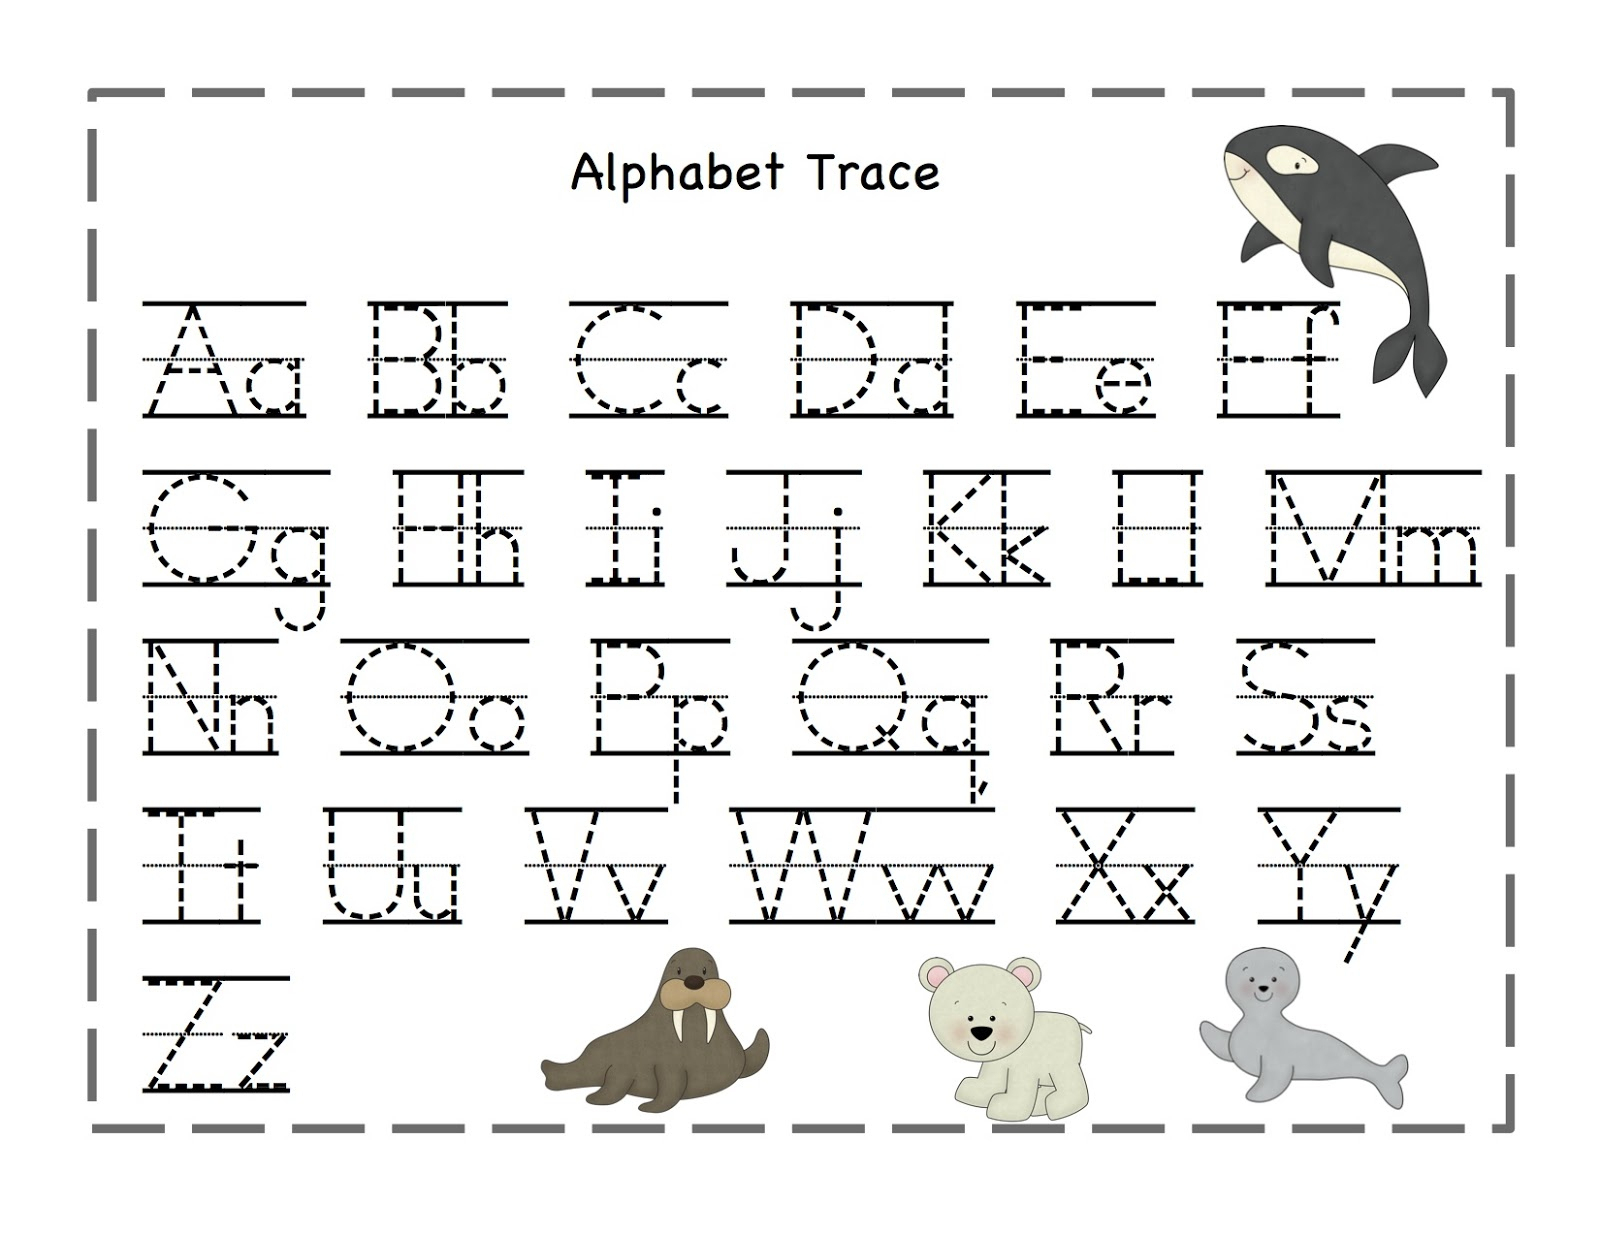 Free Printable Alphabet Tracing Worksheets Number For Kindergarten | Free Printable Alphabet Tracing Worksheets For Kindergarten